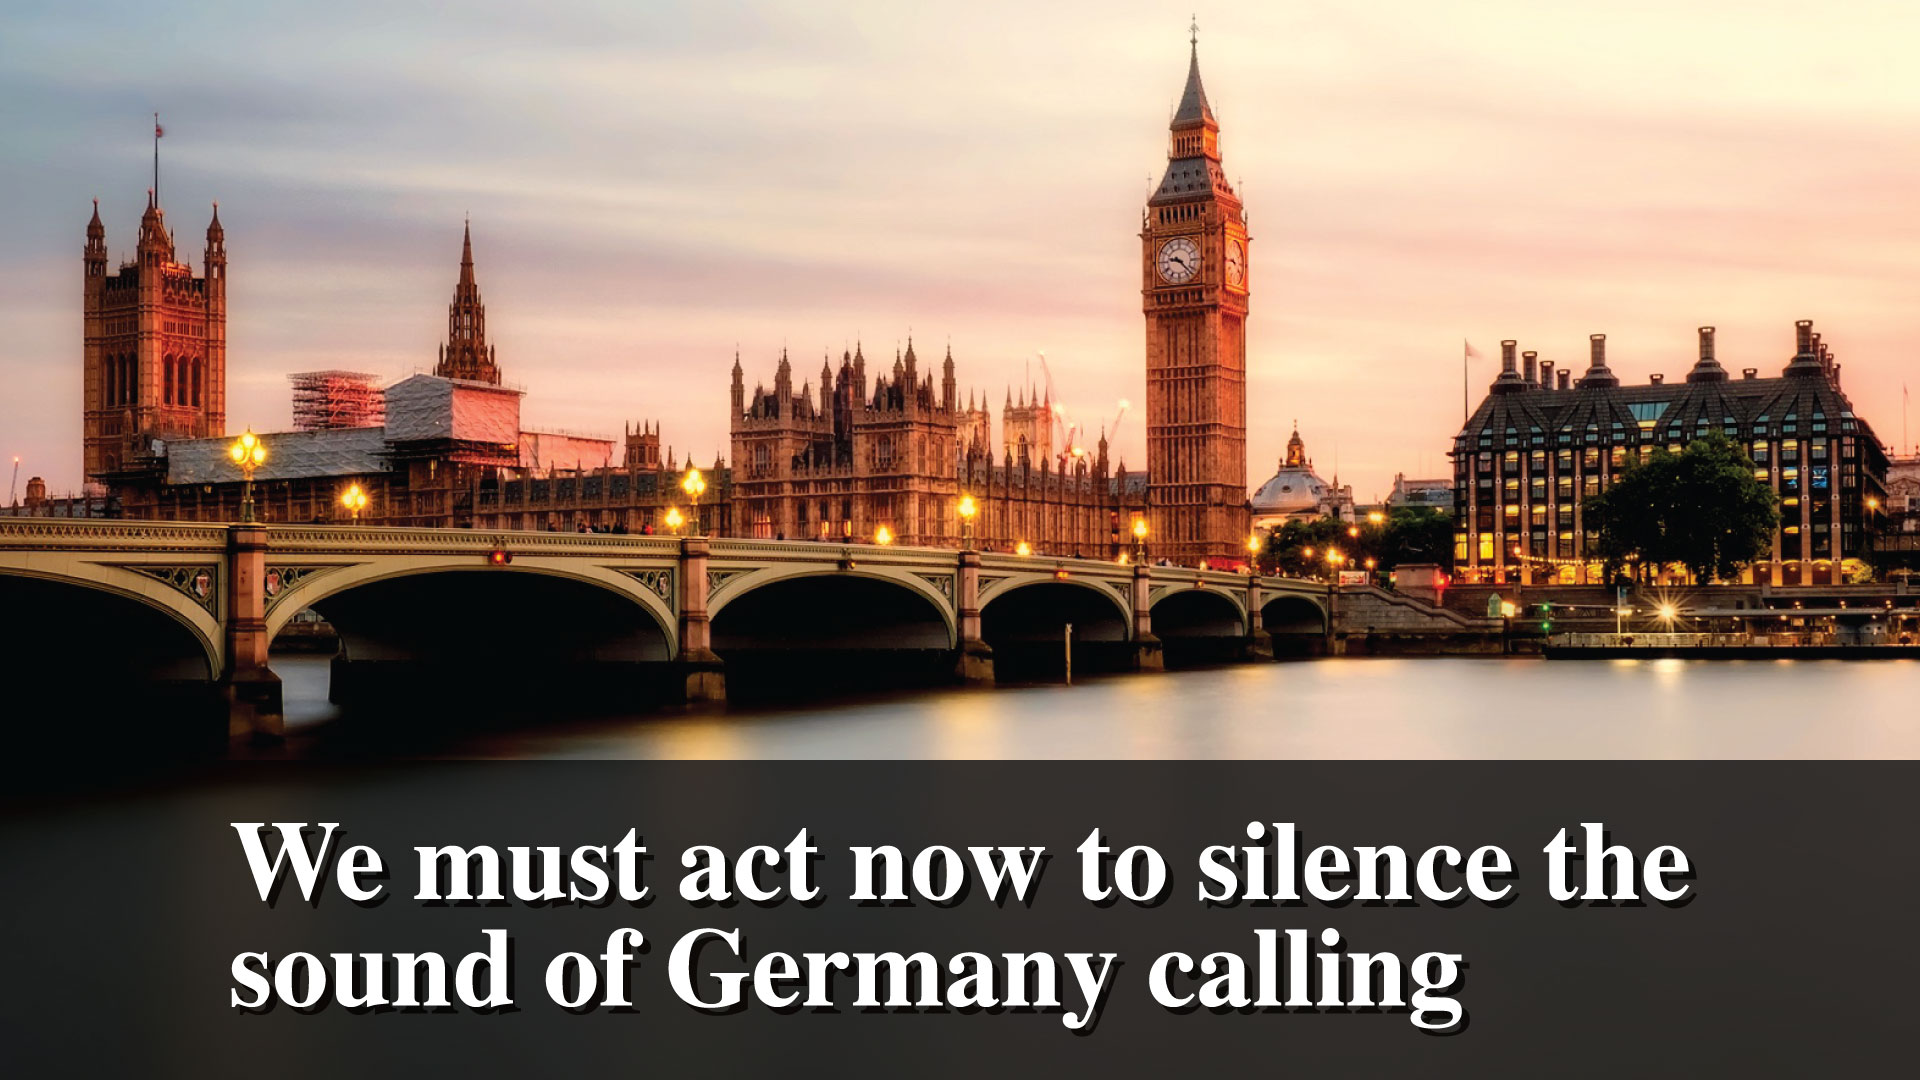 We must act now to silence the sound of Germany calling